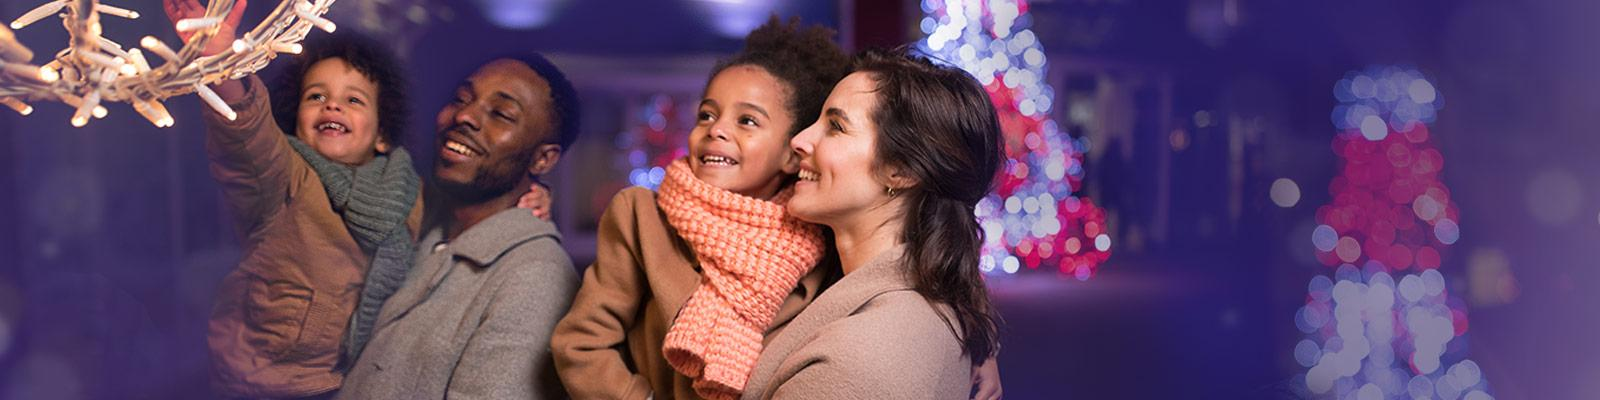 Winter Holidays - have a winter break at Center Parcs!